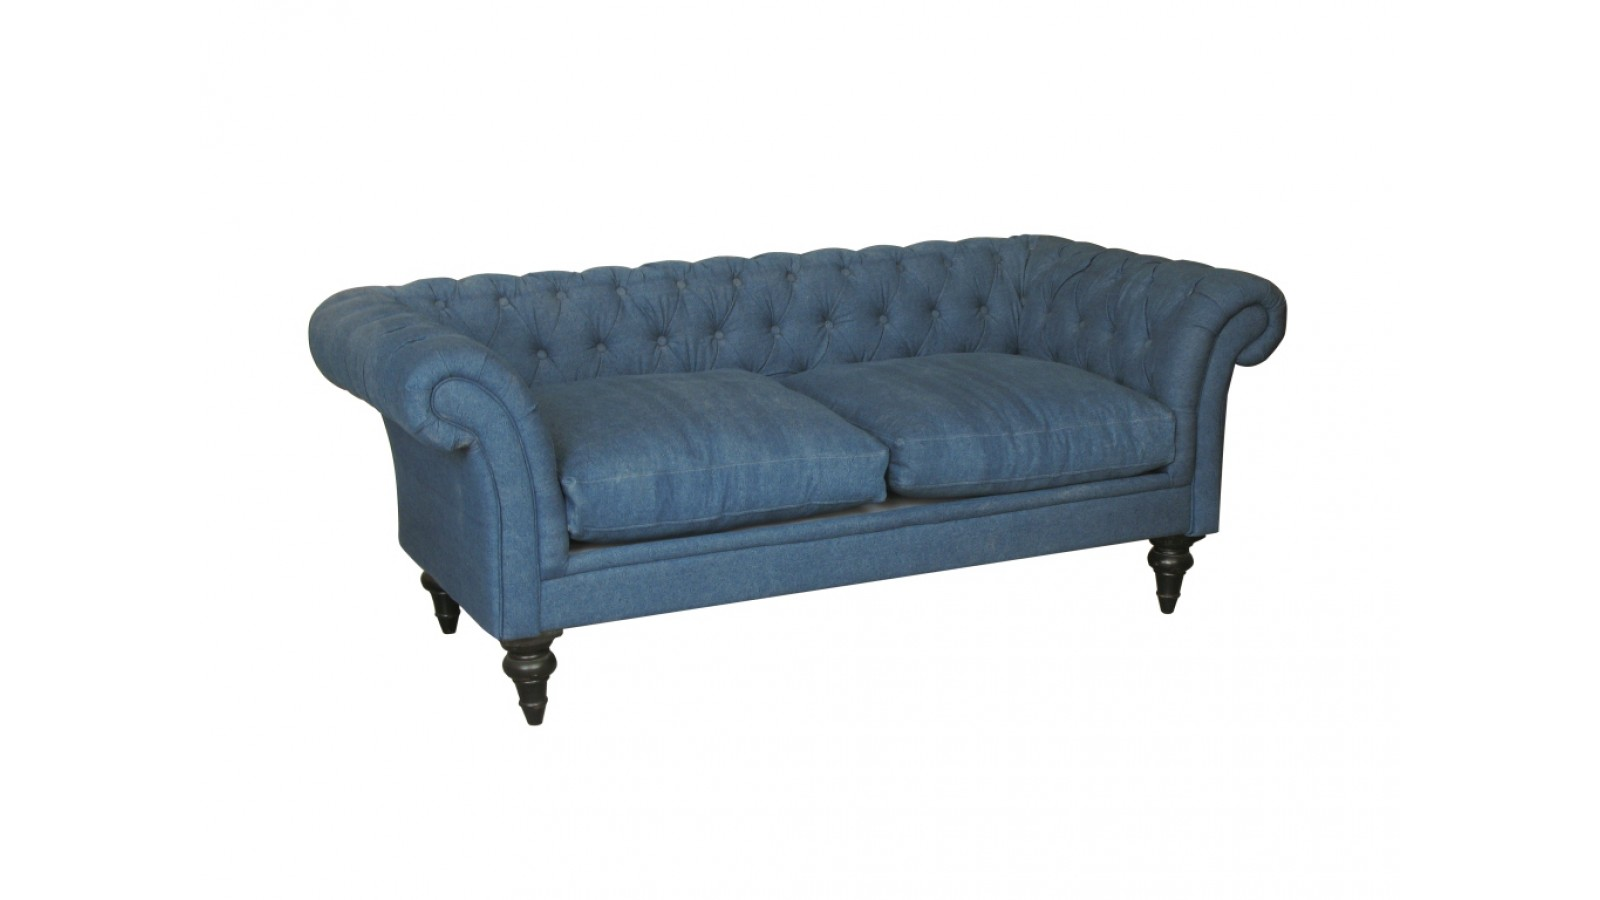 Chicago 3 Seater Chesterfield Sofa Montigny Sm210 C Black 10 1888 2 Jpg